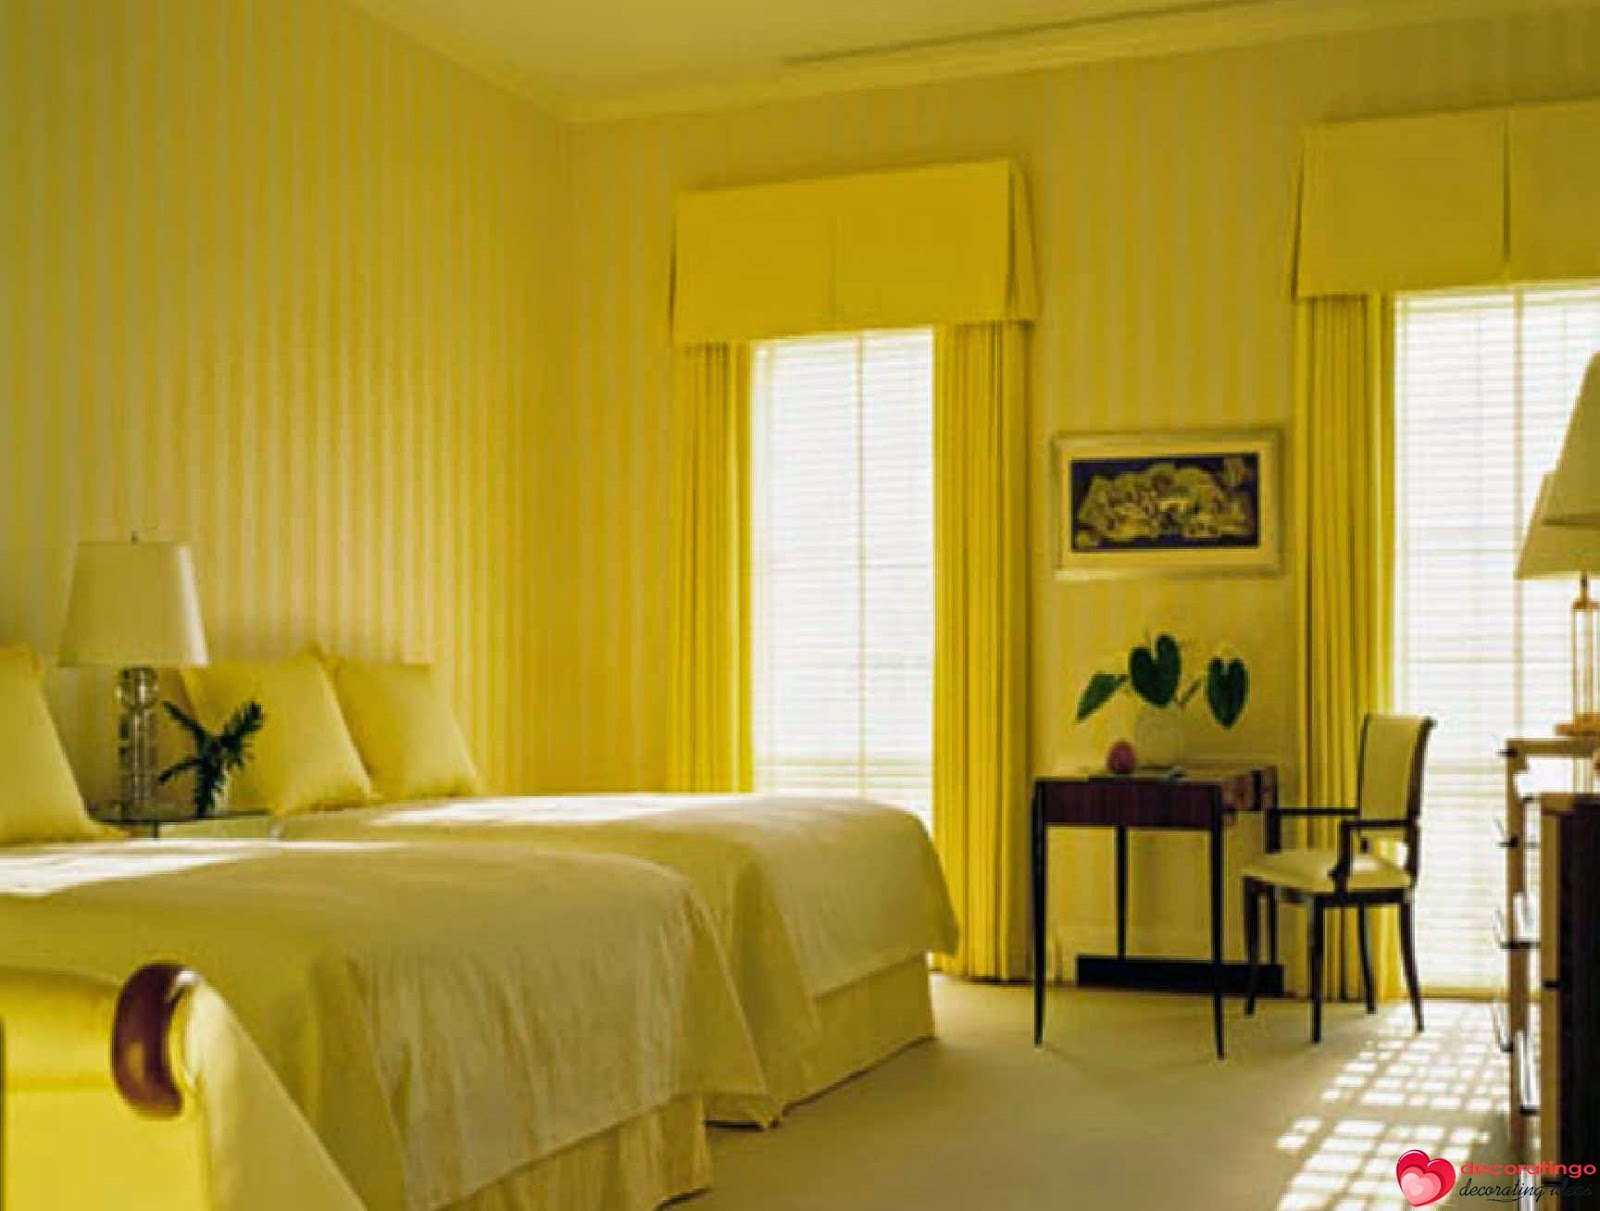 5 Stunning Yellow Bedroom Decorating Ideas